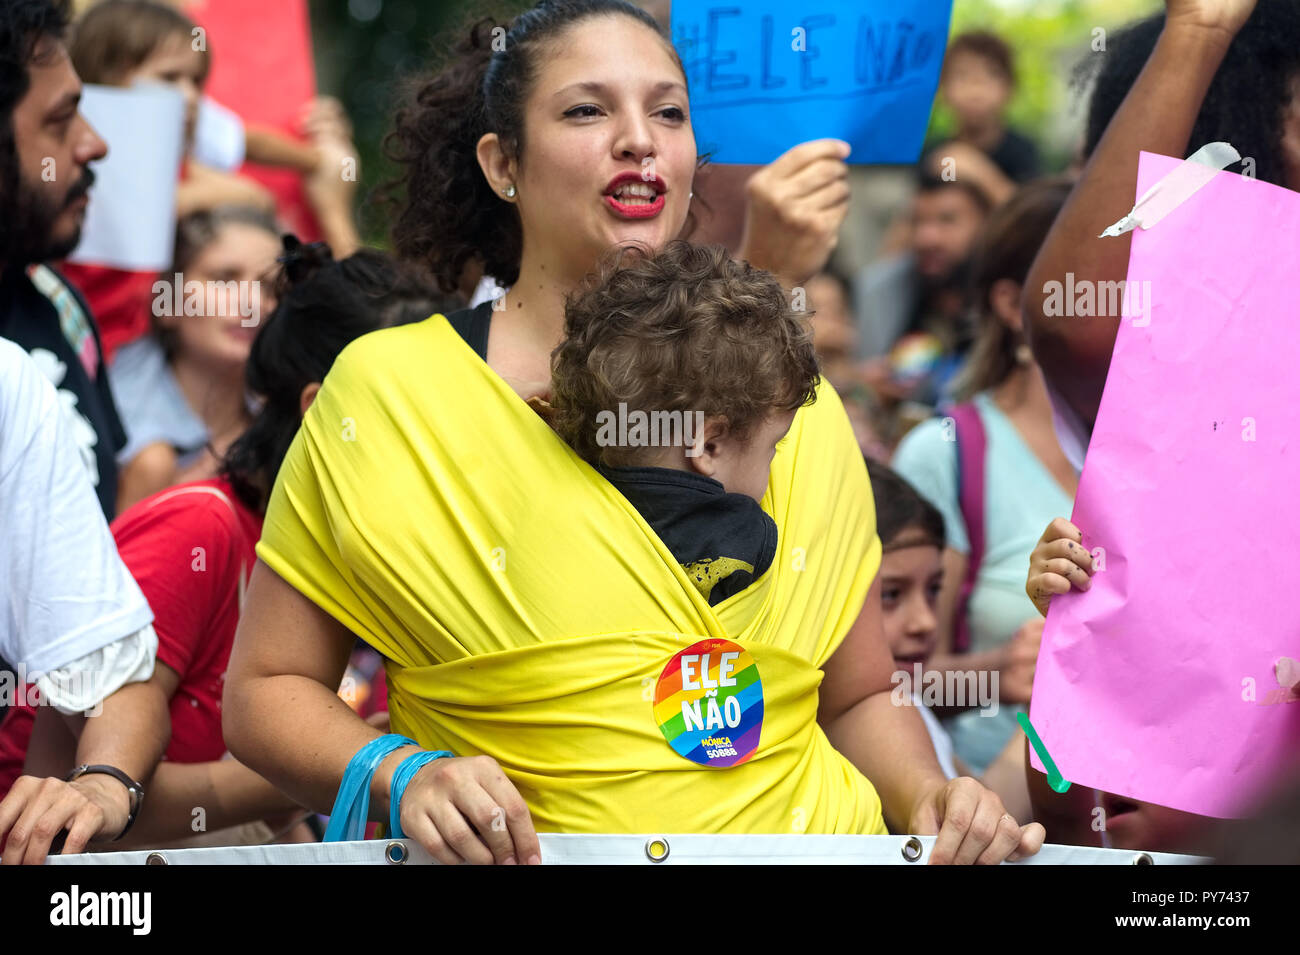 Rio de Janeiro - September 29, 2018: Mothers take to the streets to protest against far-right candidate Bolsonaro a week before the presidential vote - Stock Image